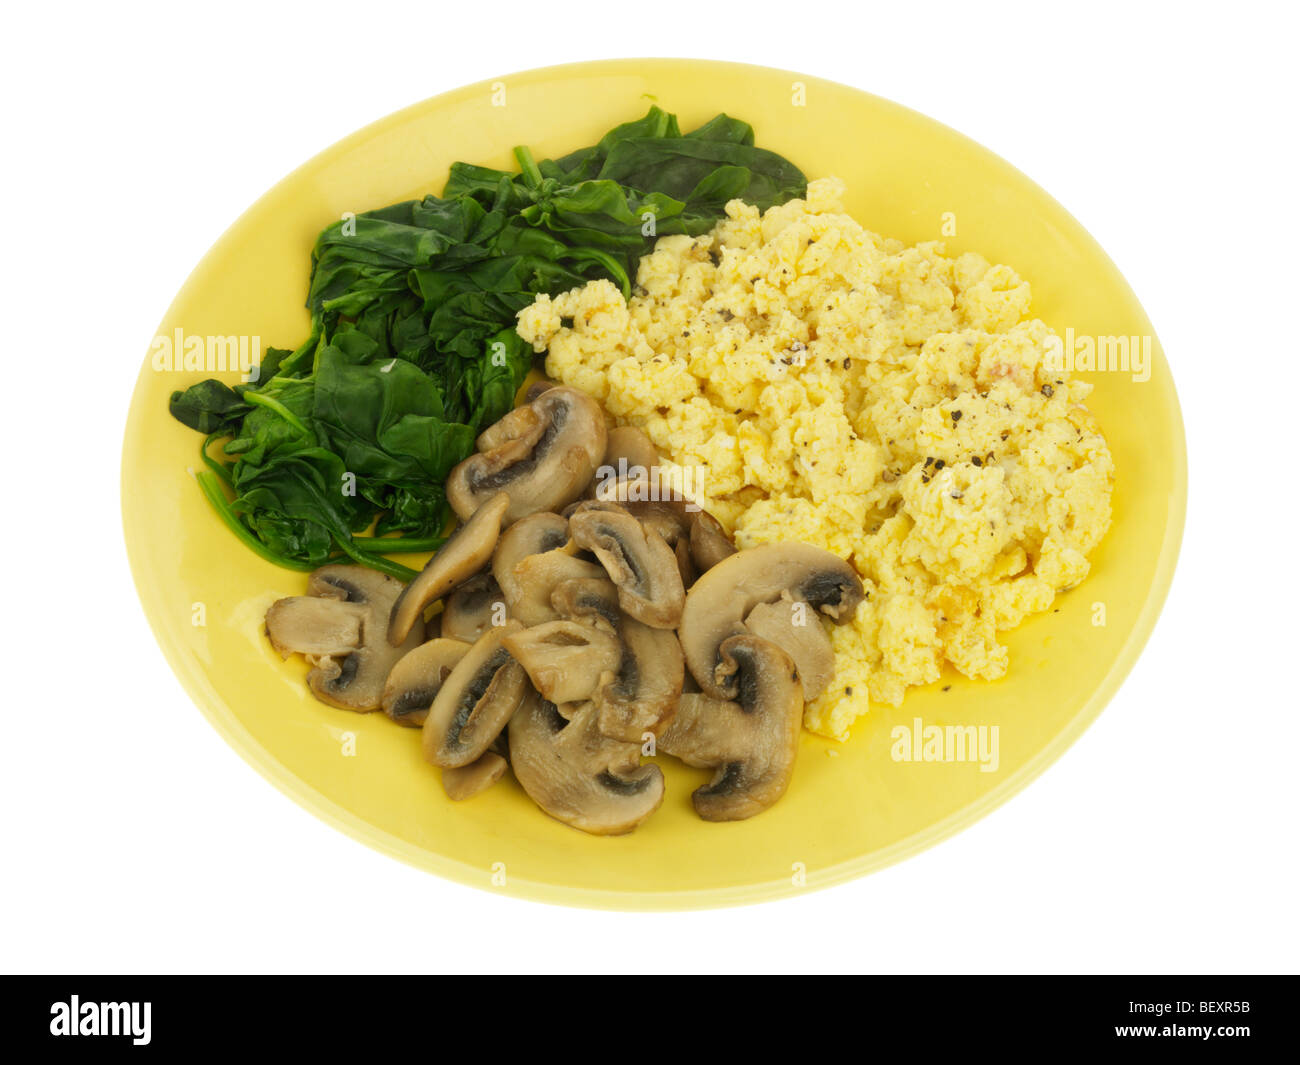 Scrambled Egg with Mushrooms and Spinach - Stock Image